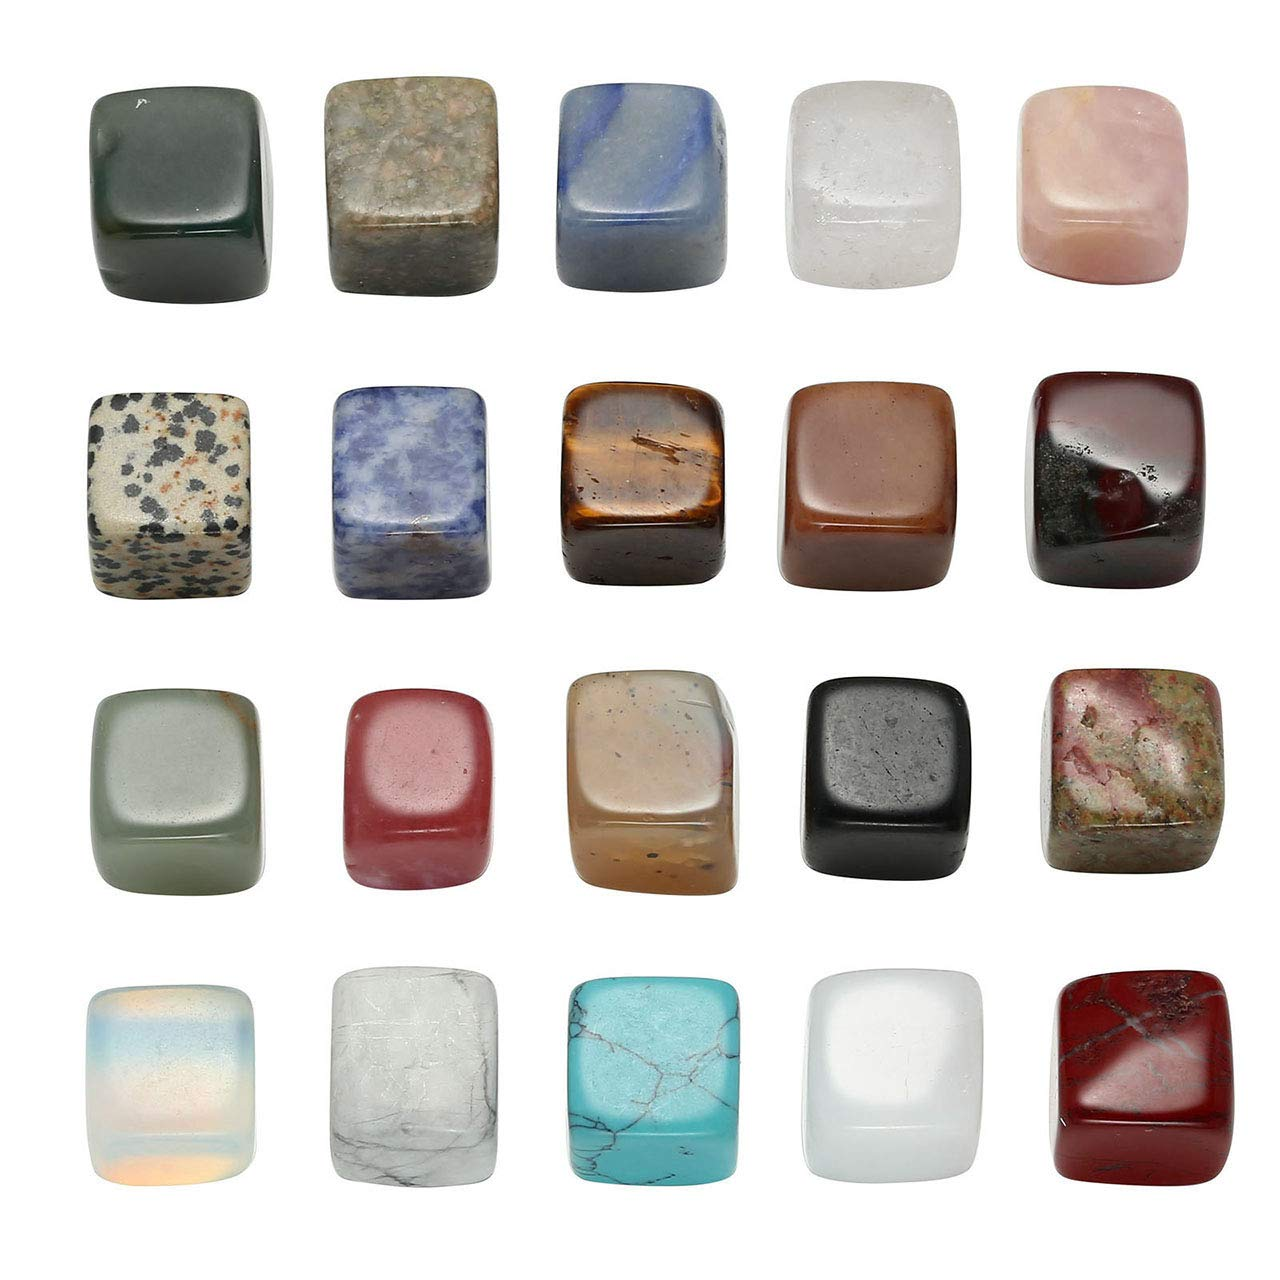 JOVIVI Natural Tumbled Stone Healing Reiki Crystal Chakra Polished Gemstone Collection Box for Wicca, Energy, Jewelry Making, Home Decoration, 20 Dice Shaped Assorted Mixstones 0.59-0.79